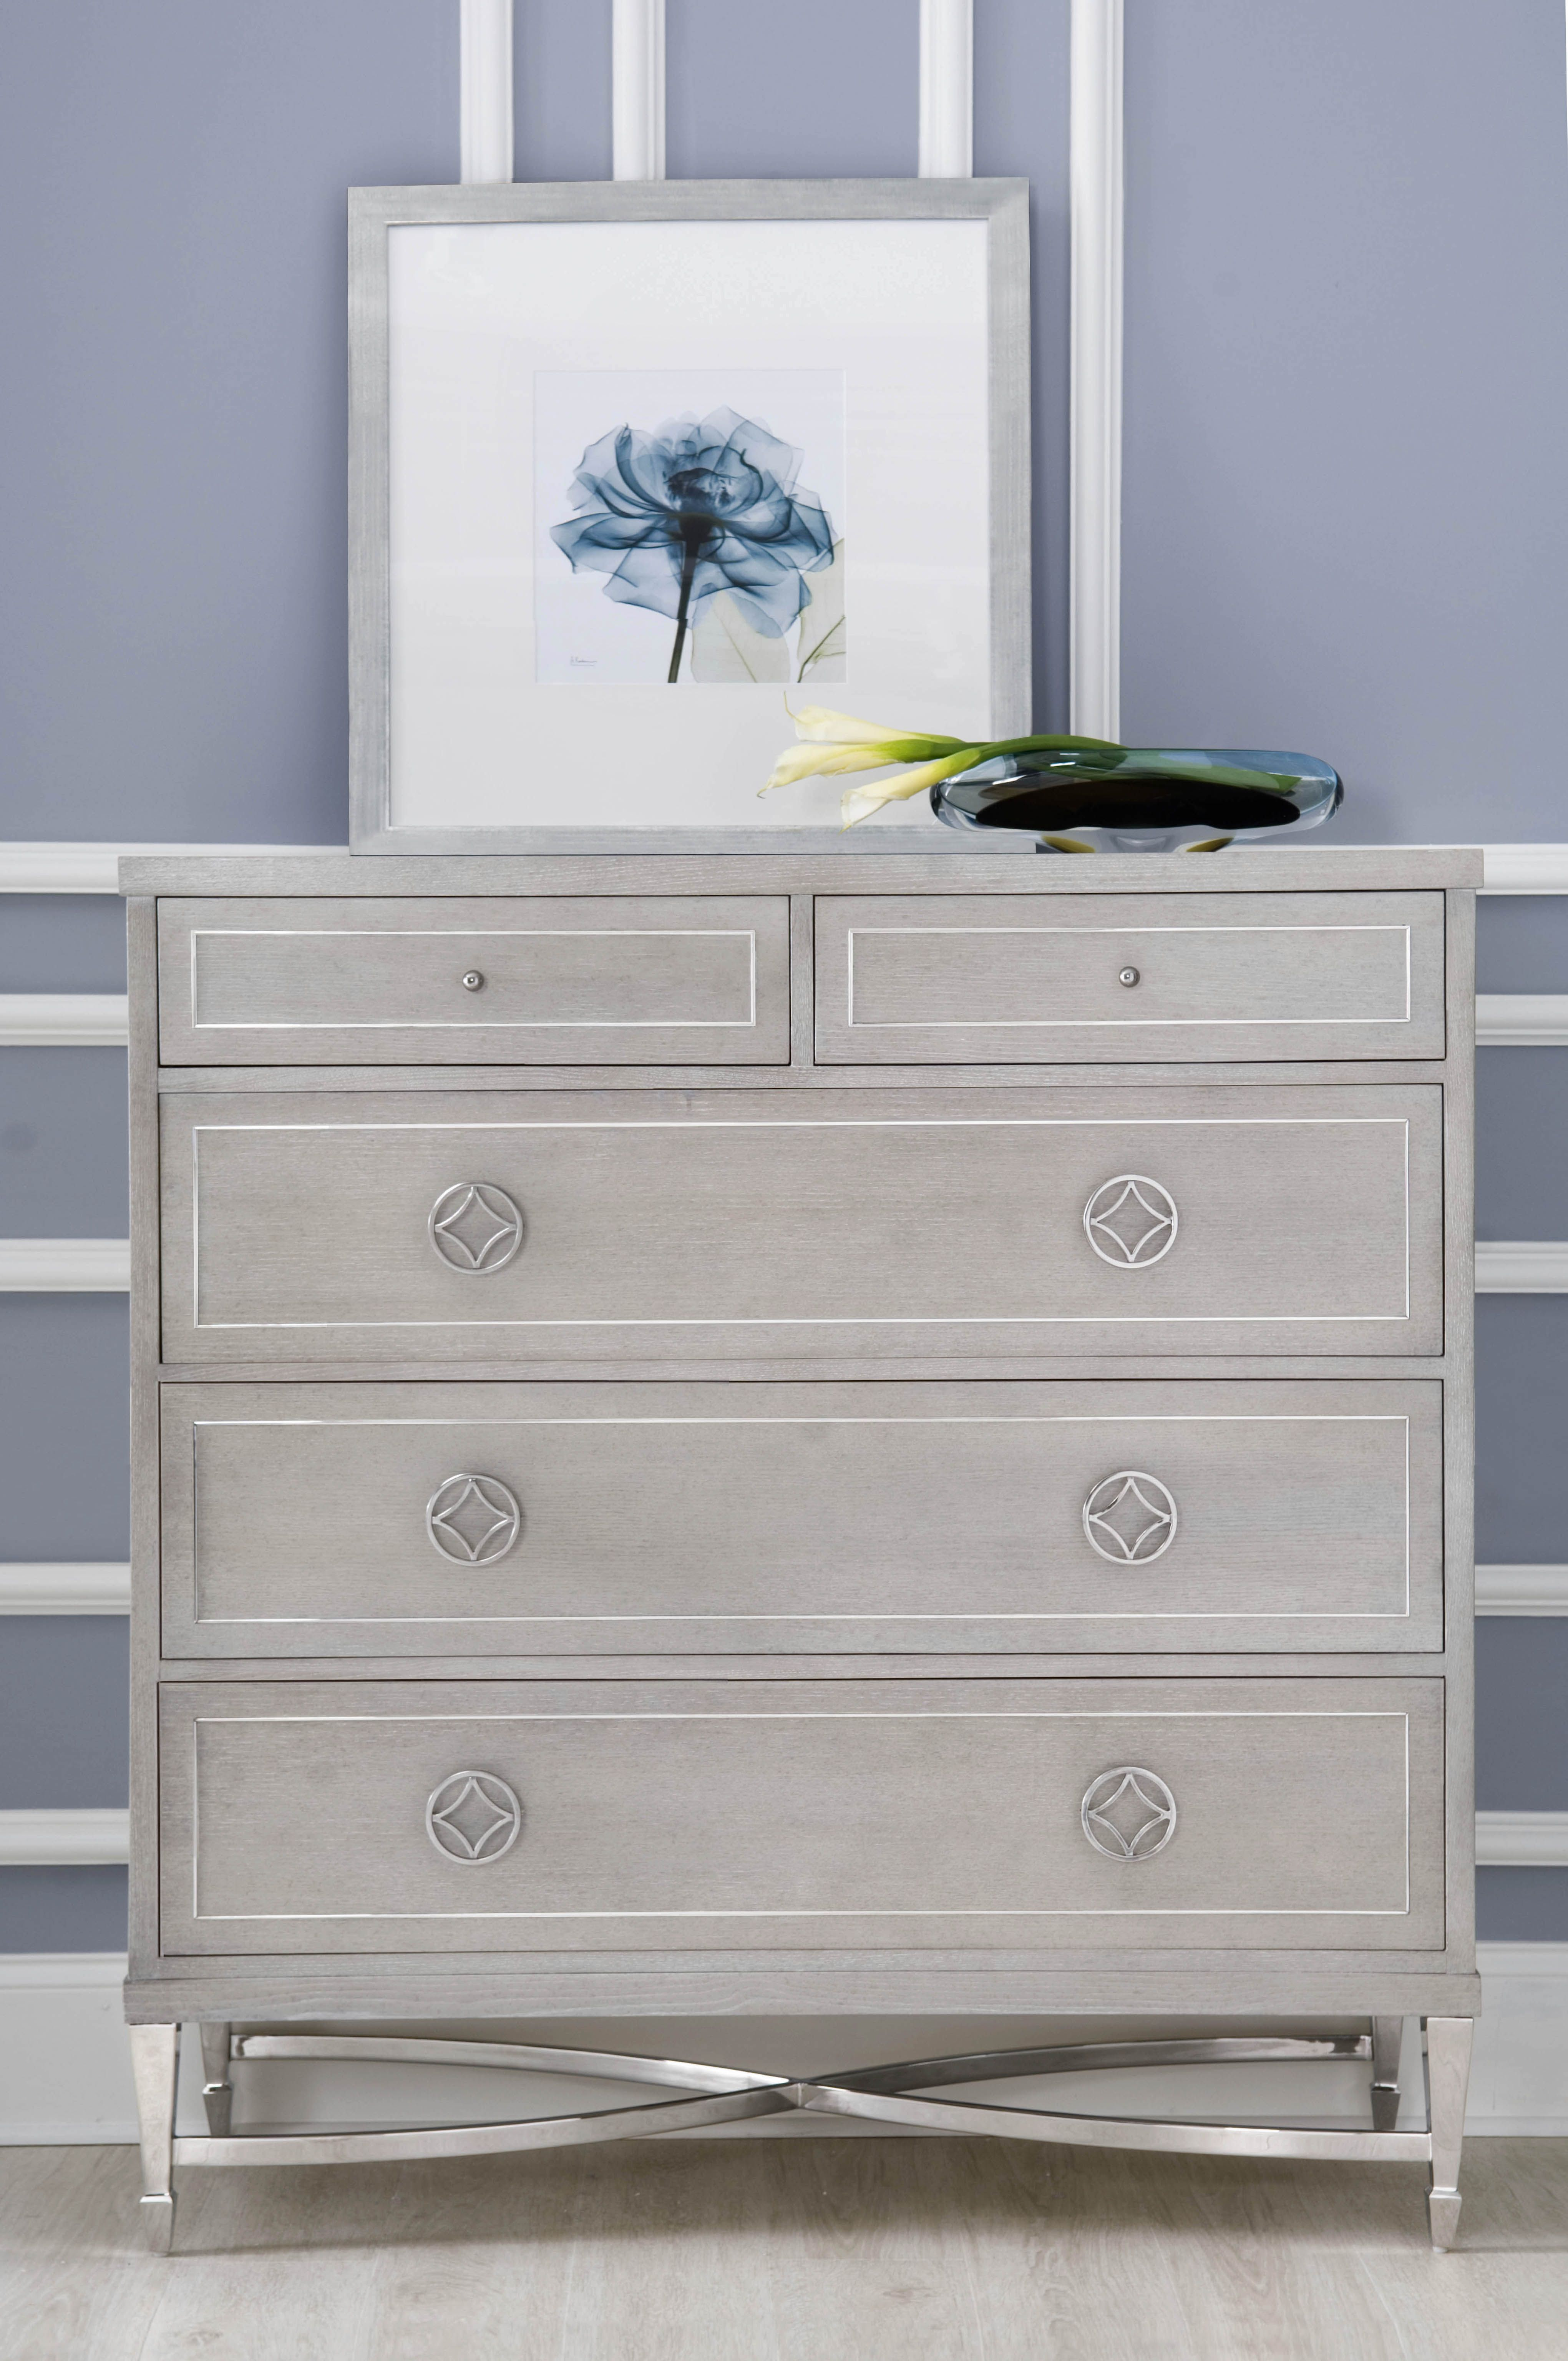 Top Pick By Kati Curtis Www Katicurtisdesign In The Official Hpmkt Preview Chat Bernhardt Criteria Drawer Chest Soft Touch Low Sheen Glossy